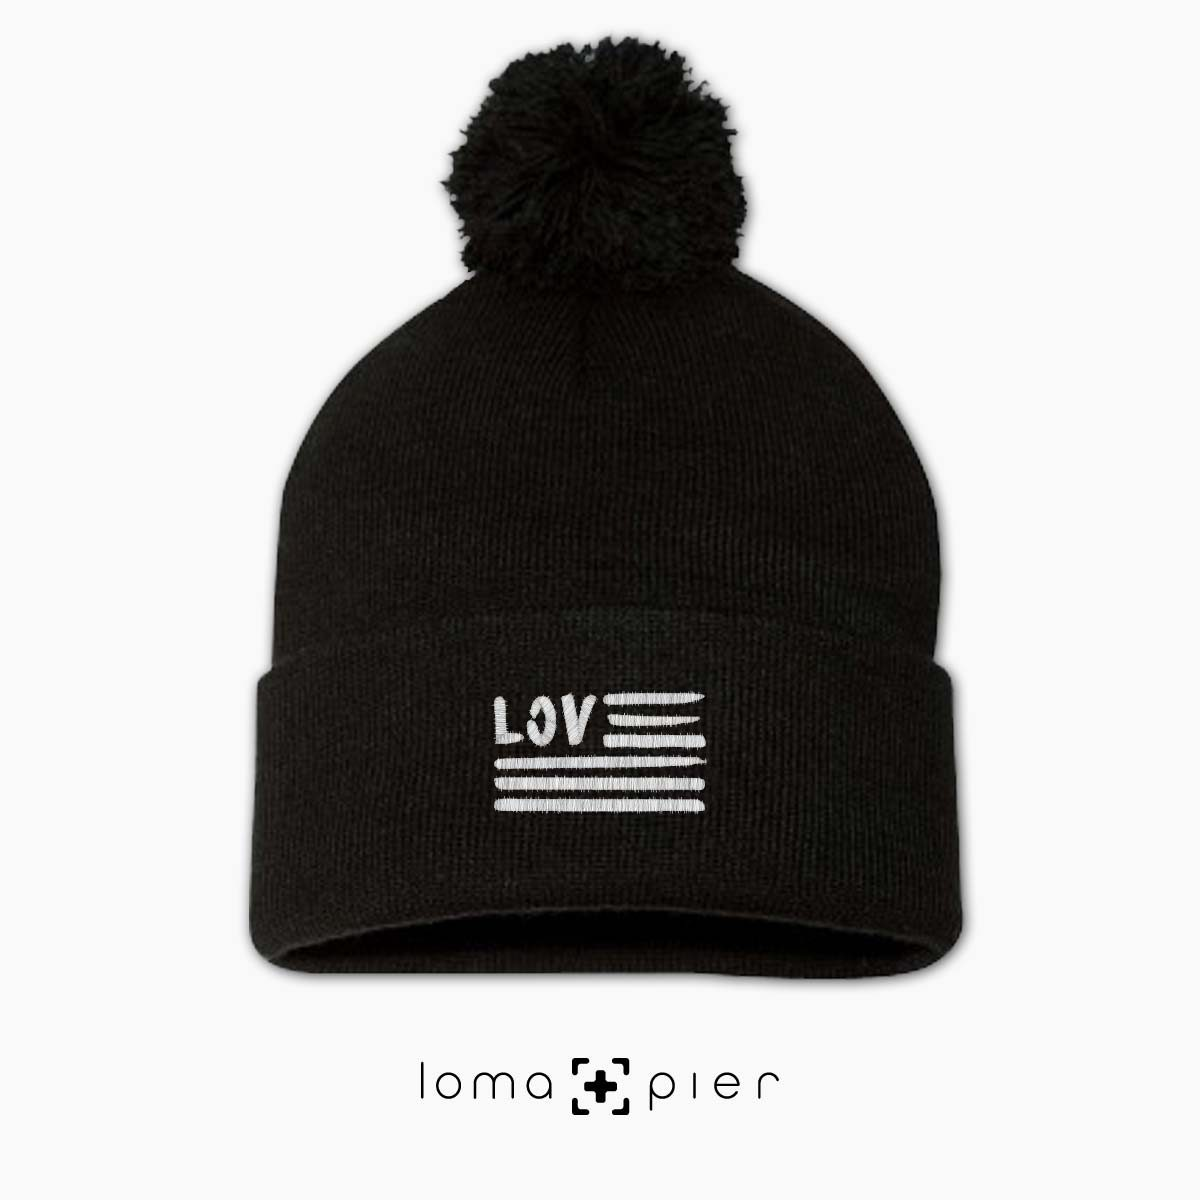 AMERICAN LOVE icon embroidered on a black pom pom beanie with white thread by loma+pier hat store